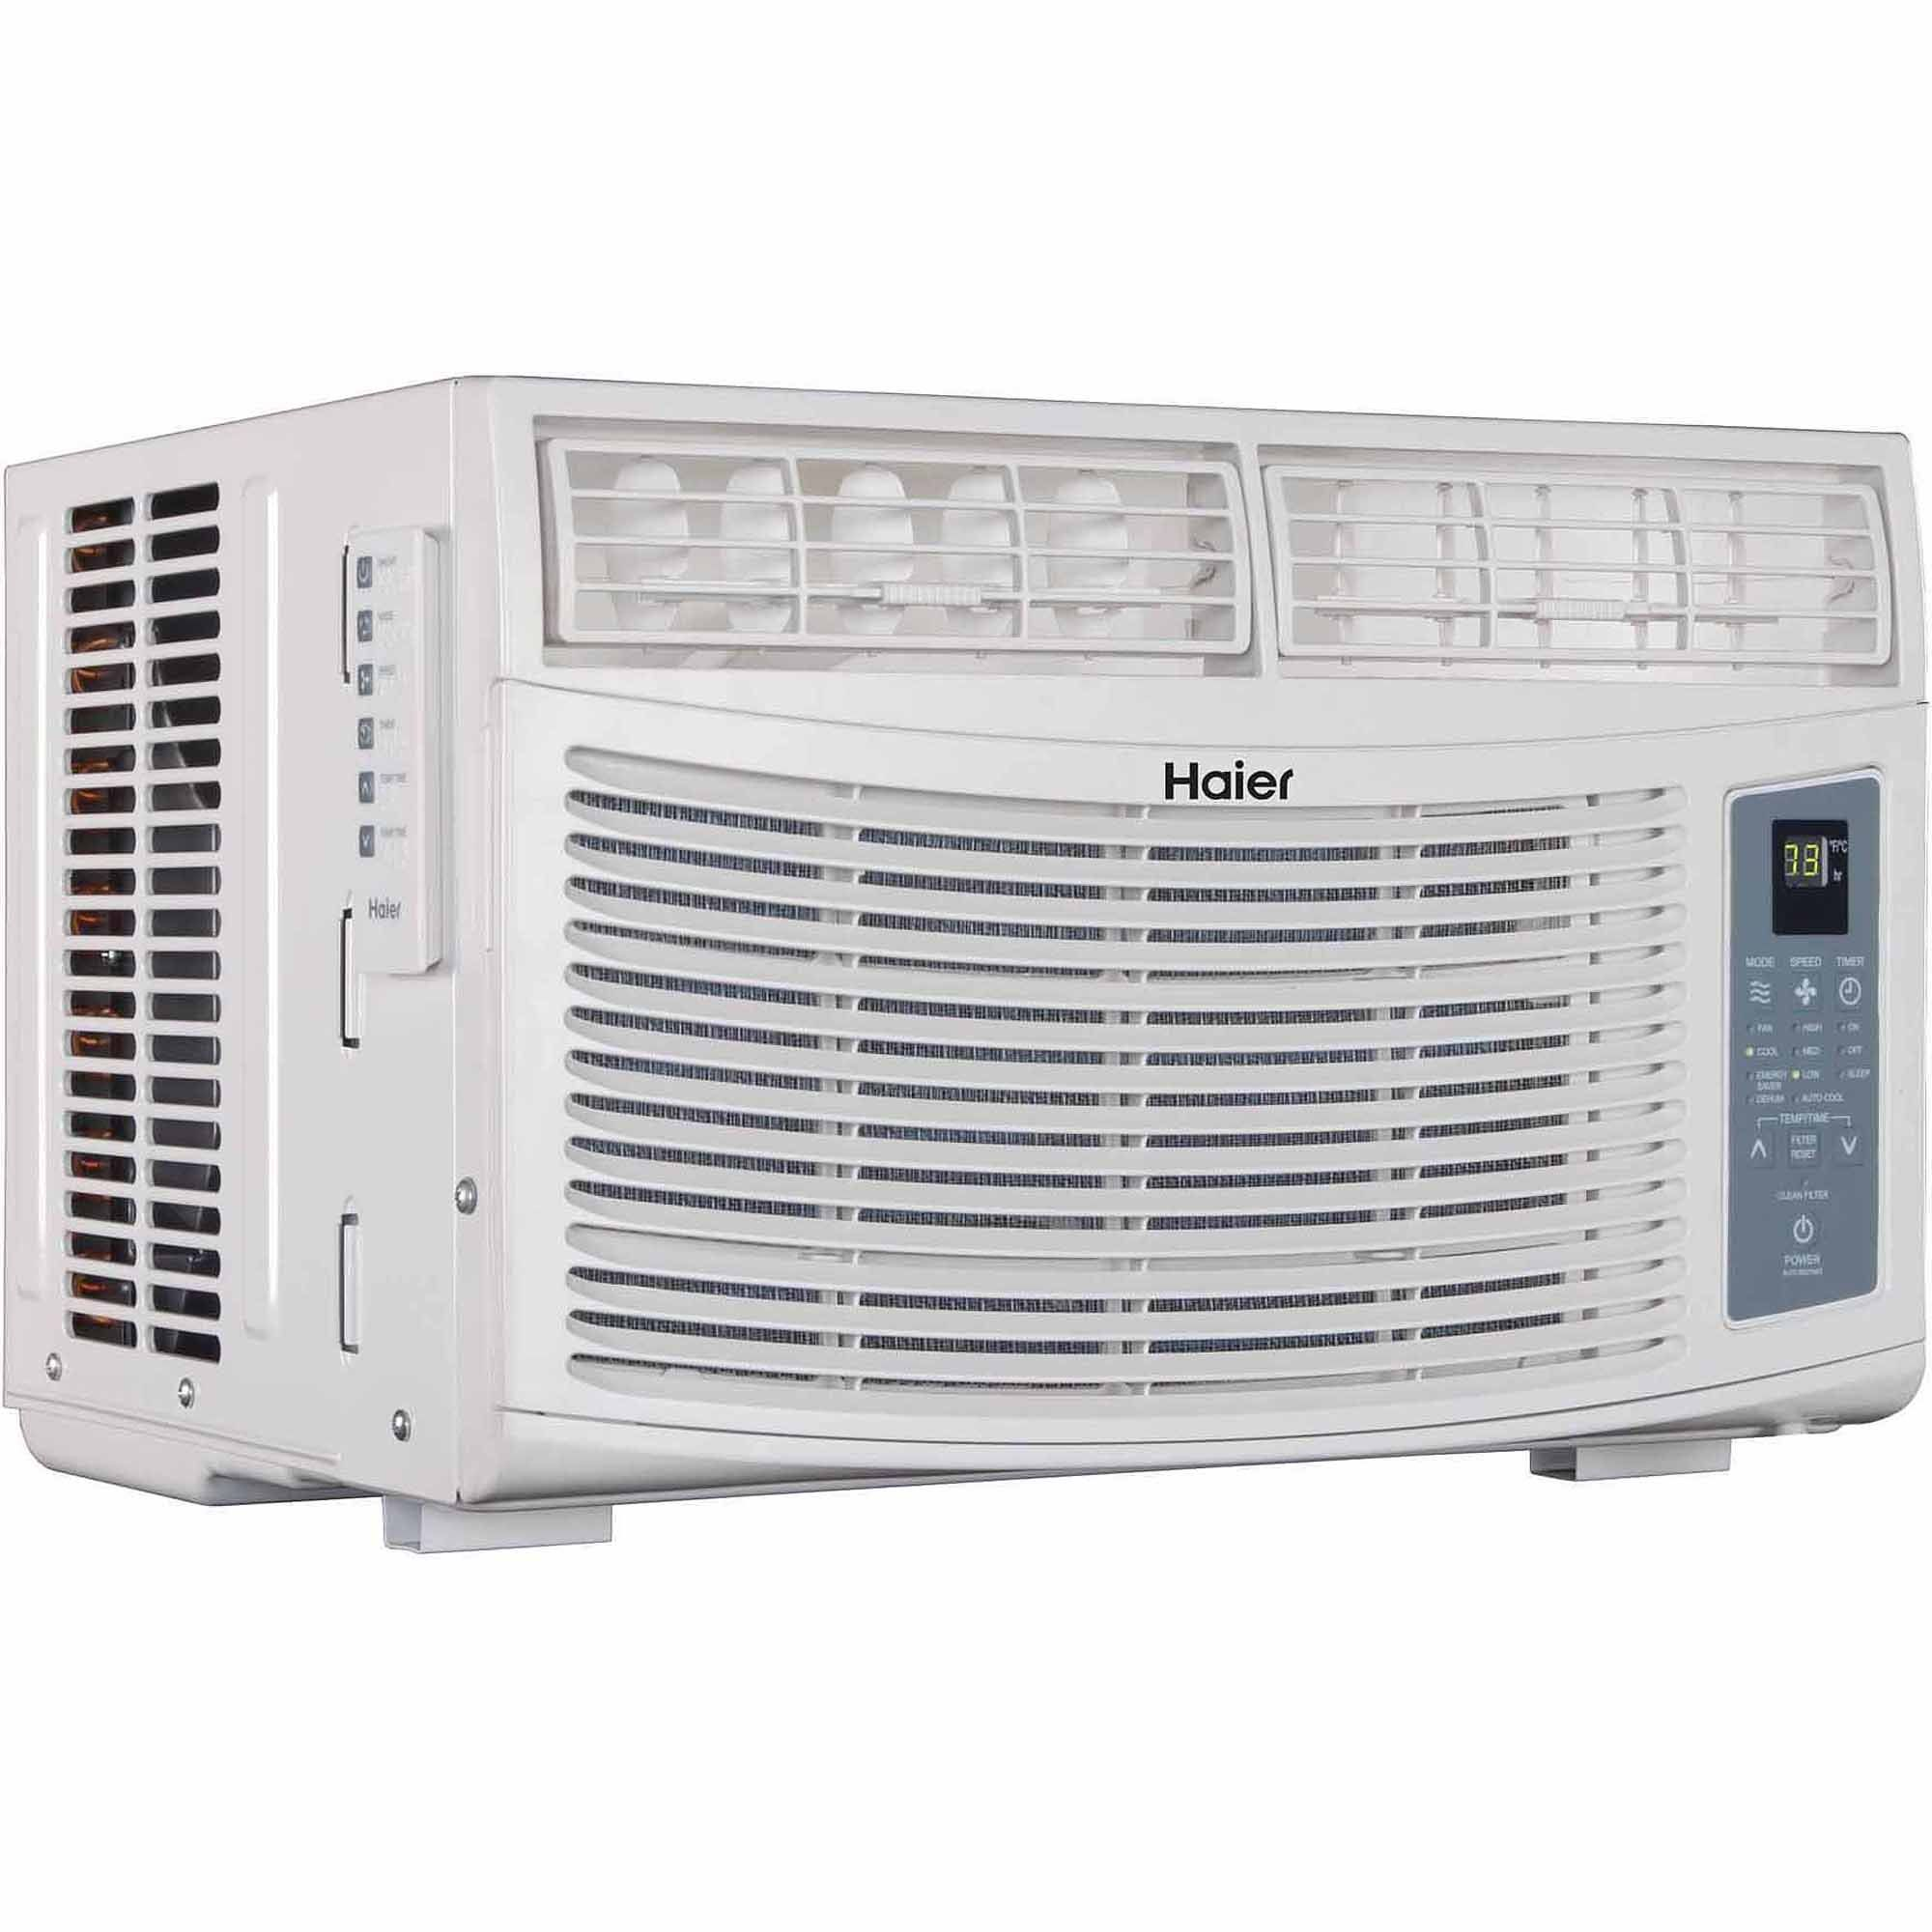 Haier 6,000 BTU Window Air Conditioner, Factory